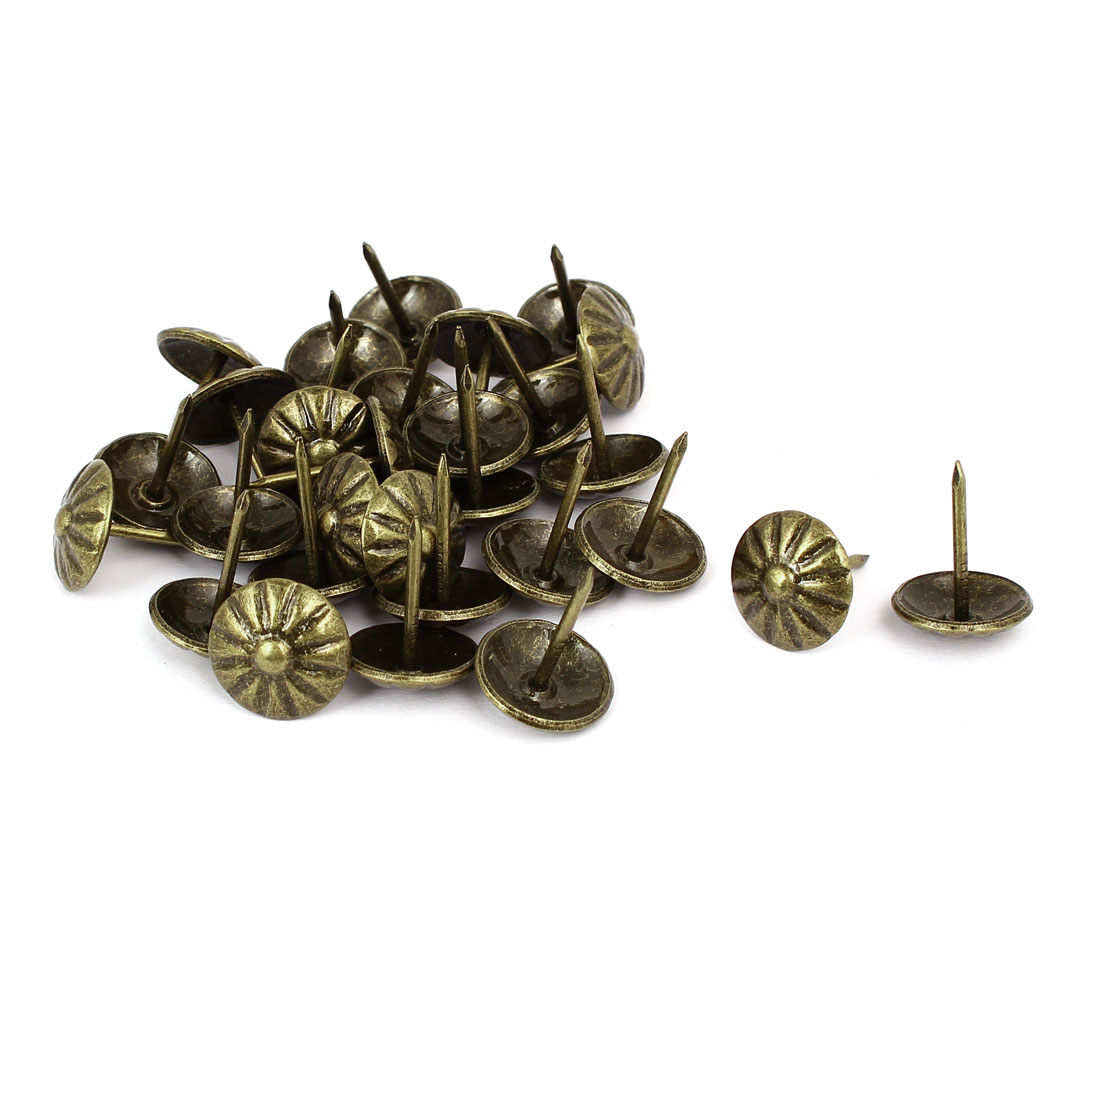 Home Metal Round Head Upholstery Tack Push Nail Bronze Tone 16mm Dia 30pcs